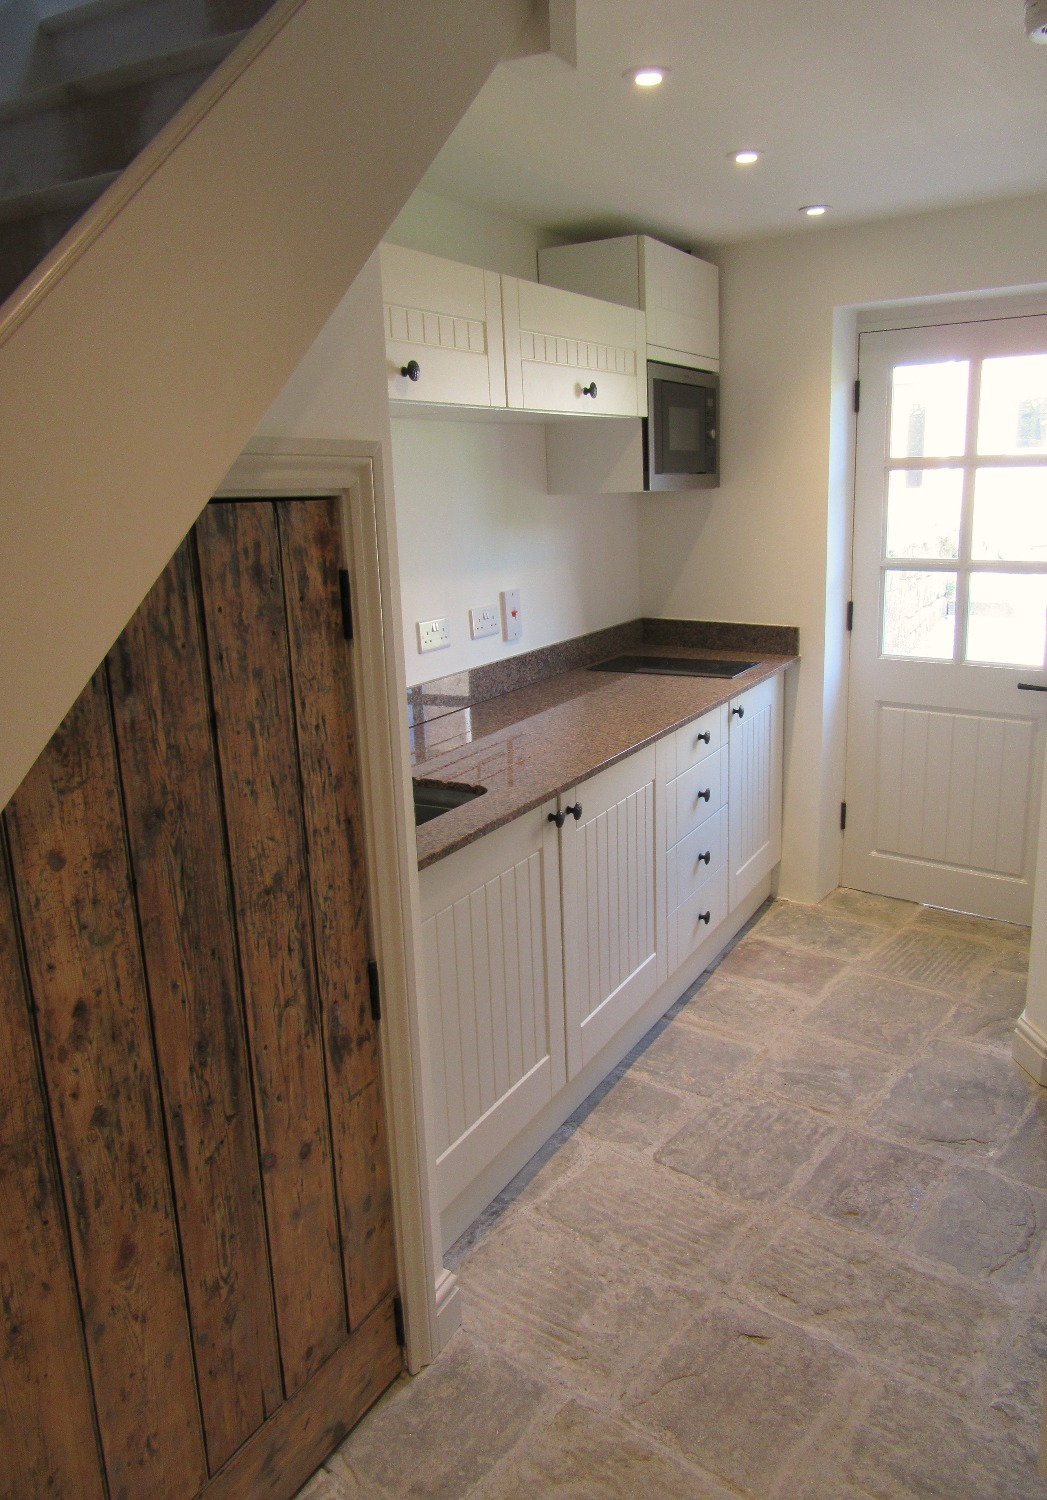 Kitchenette Design Frome